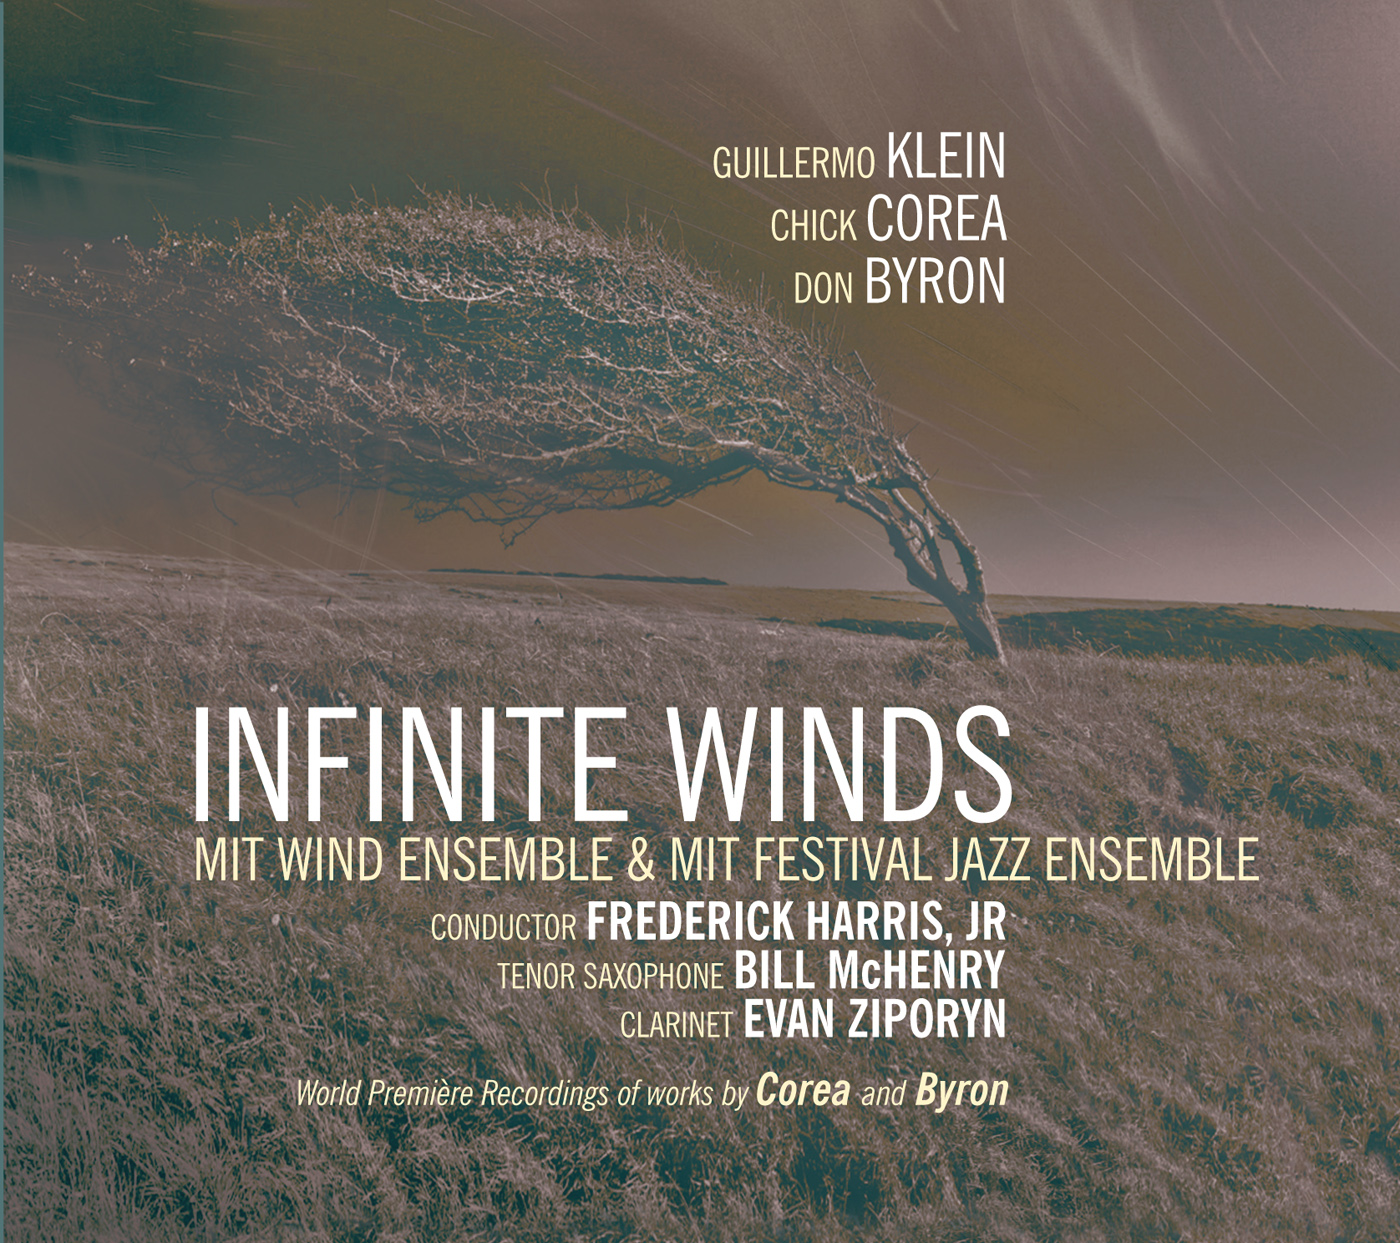 Infinite Winds  by Guillermo  Klein cover